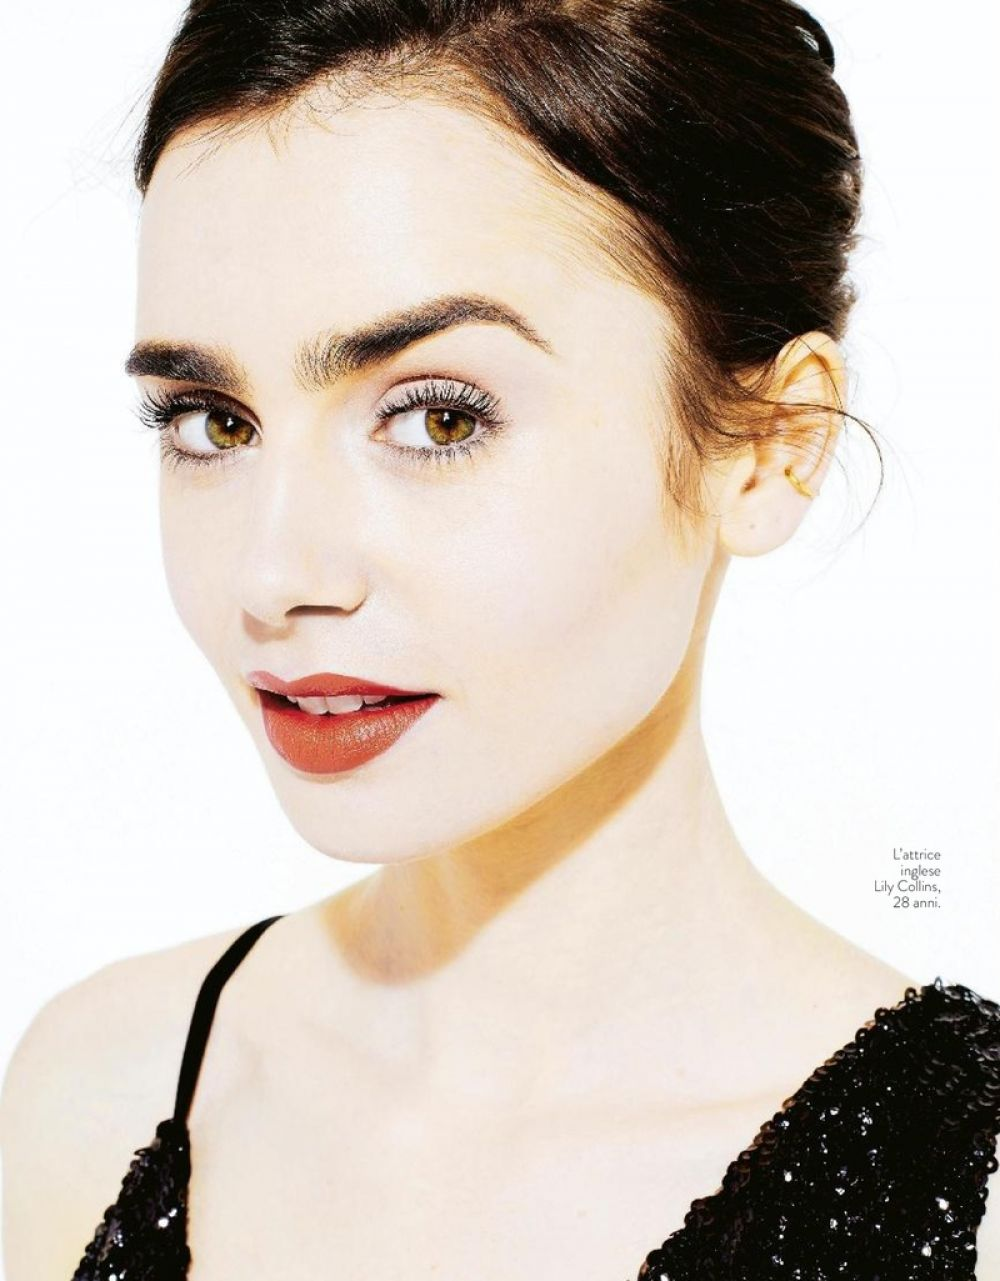 LILY COLLINS in Grazia Magazine, Italy July 2017